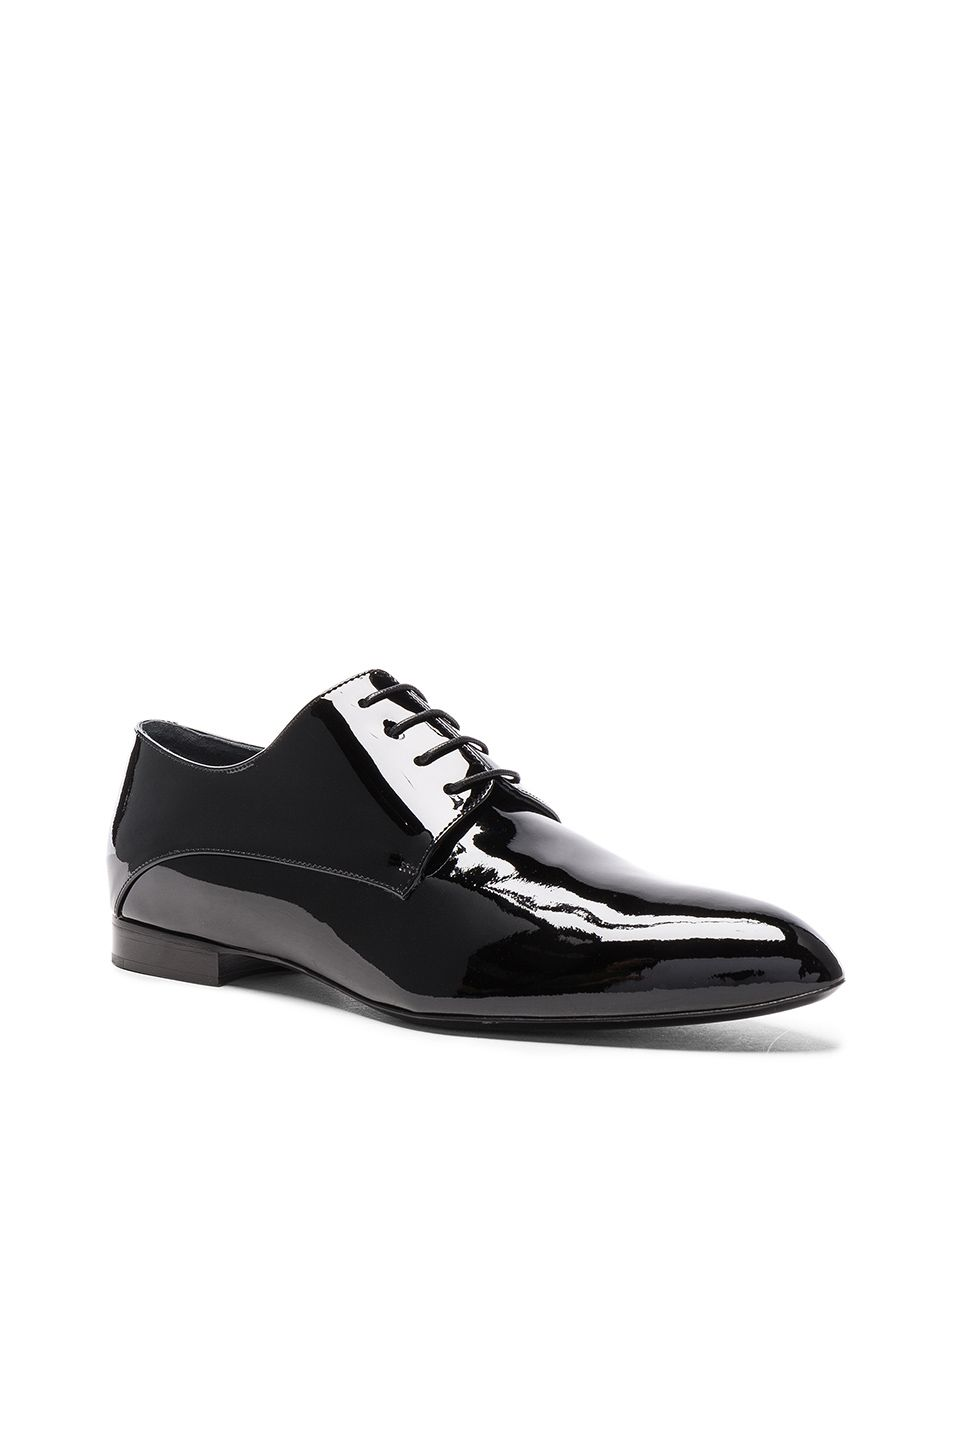 free shipping best seller Jil Sander Patent Leather Oxfords big discount cheap online ss8px